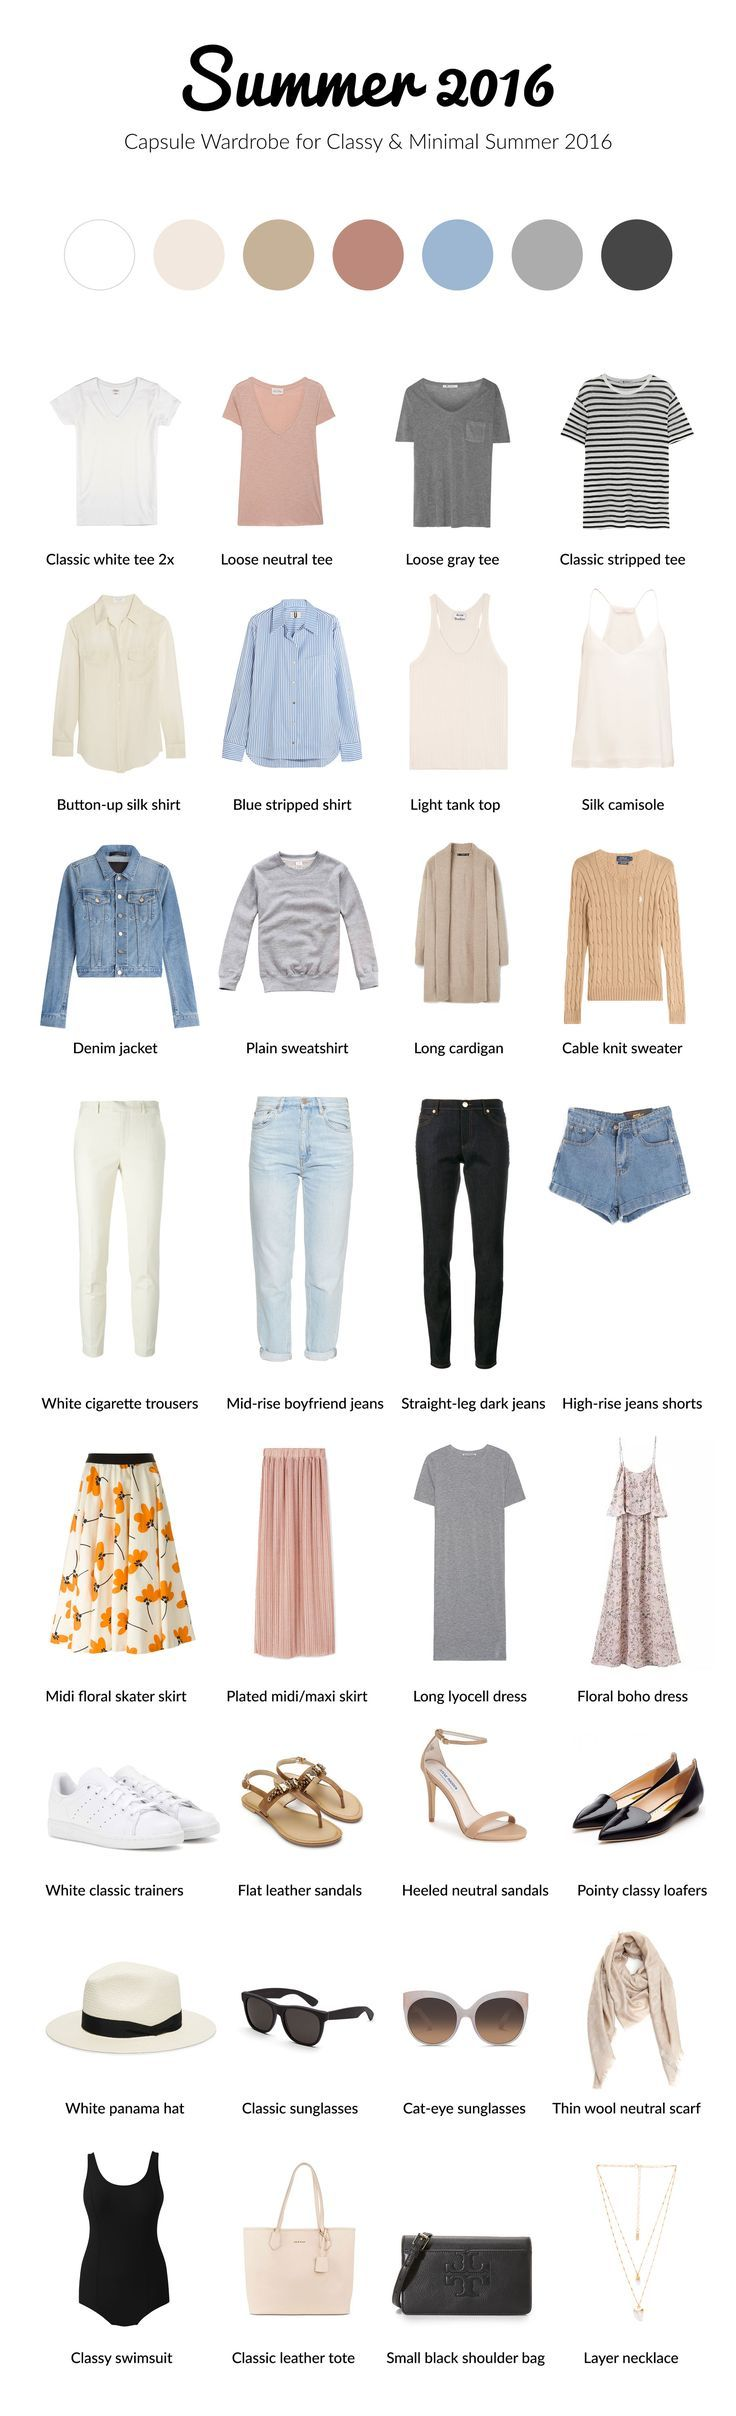 awesome Summer 2016 capsule wardrobe for classy and #minimal #capsule by Brigitte D. B....